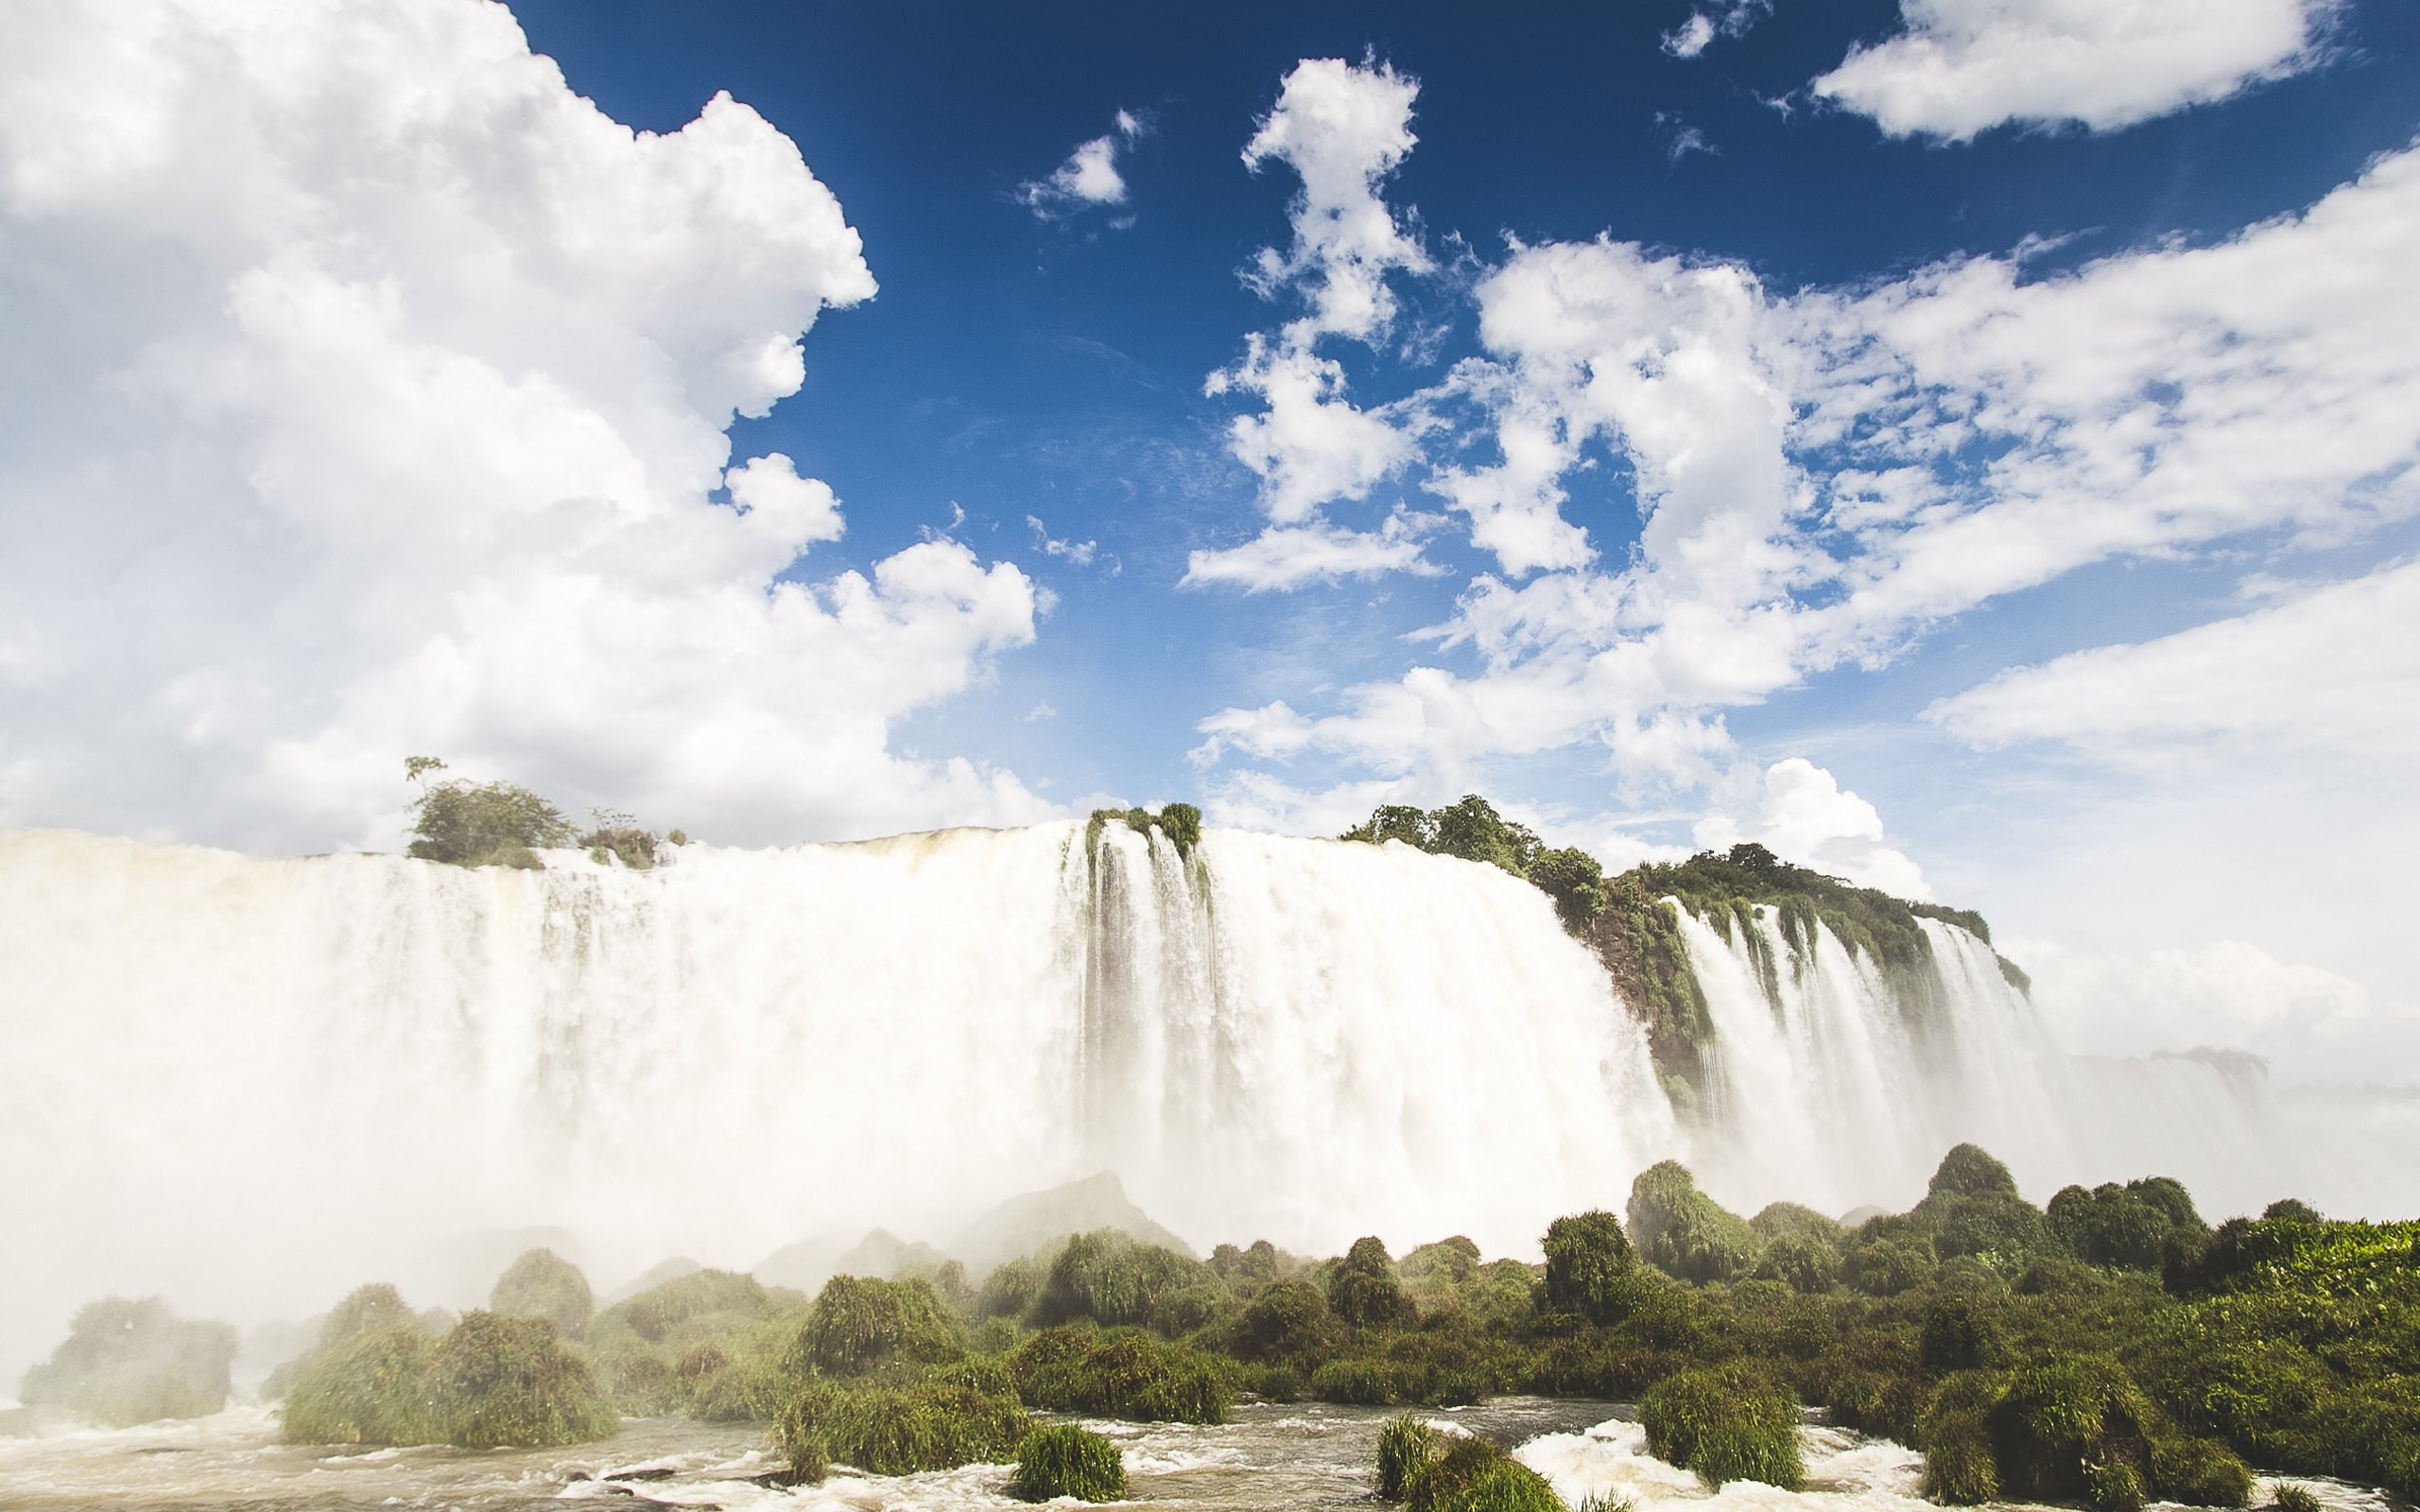 Iguazu waterfalls wallpaper 2560x1600